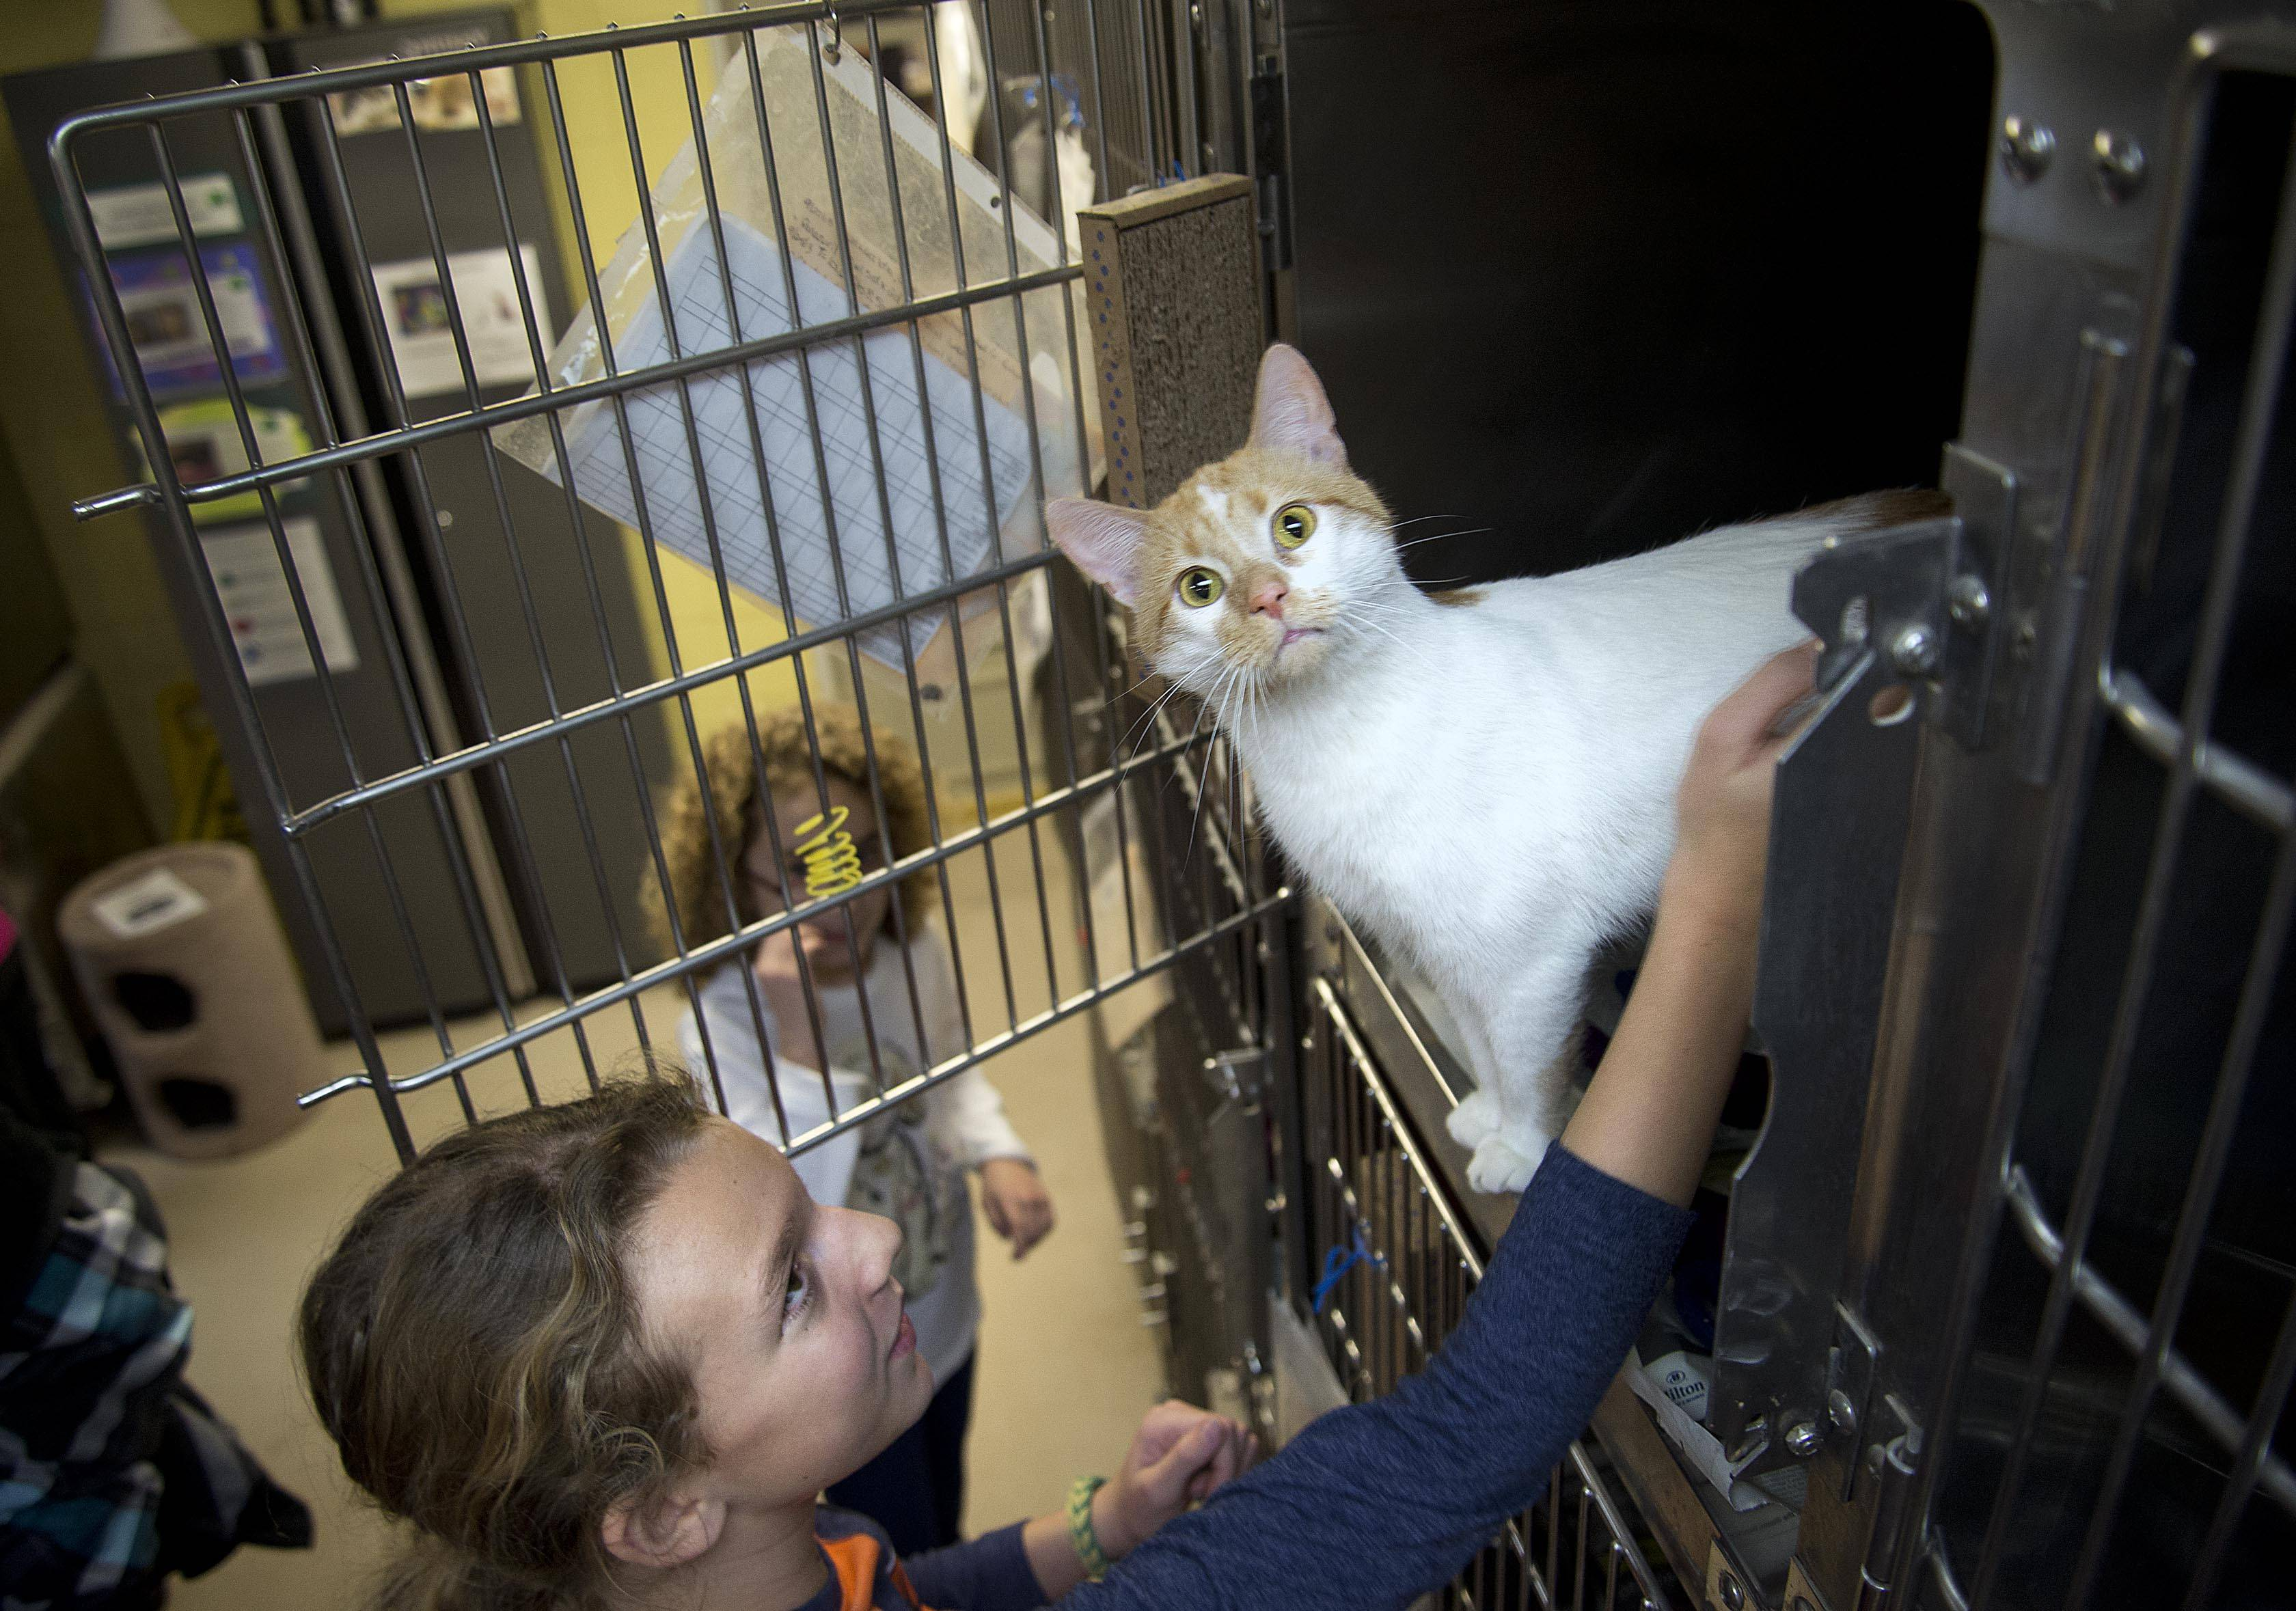 Cailey Johns, 10, of St. Charles scratches a cat at the Anderson Animal Shelter in South Elgin. Gov. Pat Quinn and Comptroller Judy Baar Topinka encourage residents to rescue a pet from a shelter.